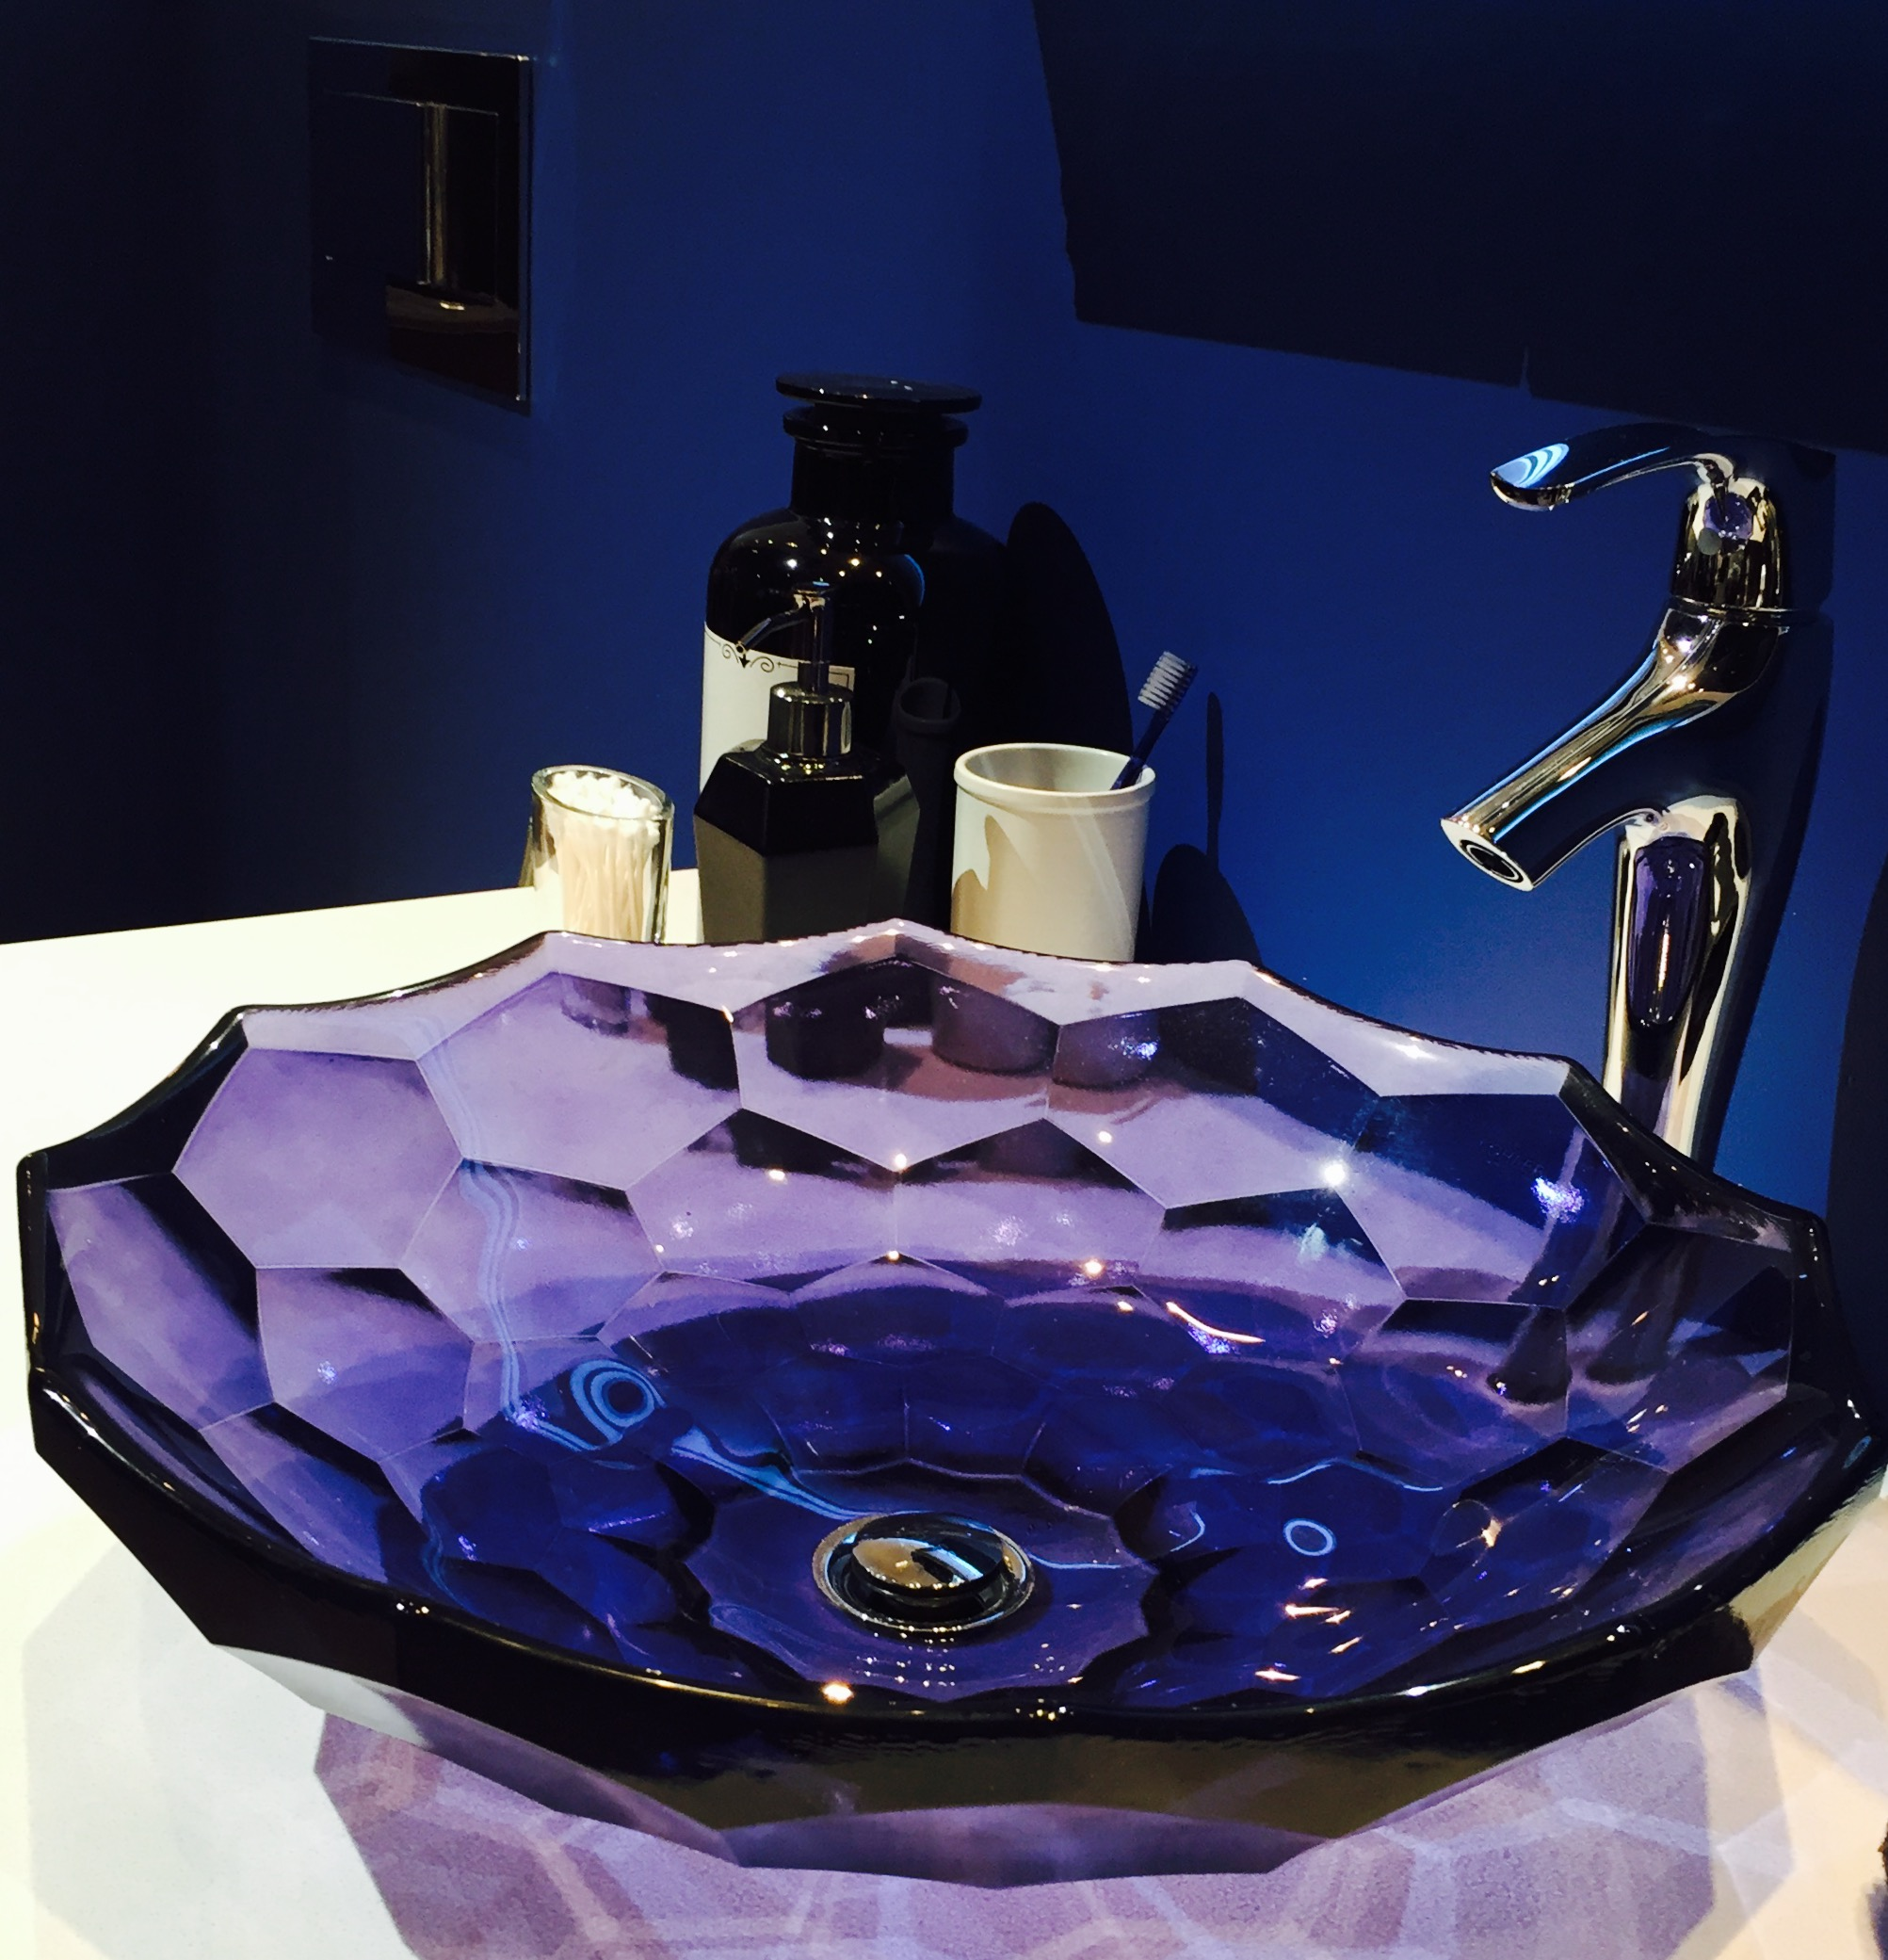 Kohler Glass Vessel in New color - Sapphire.jpg